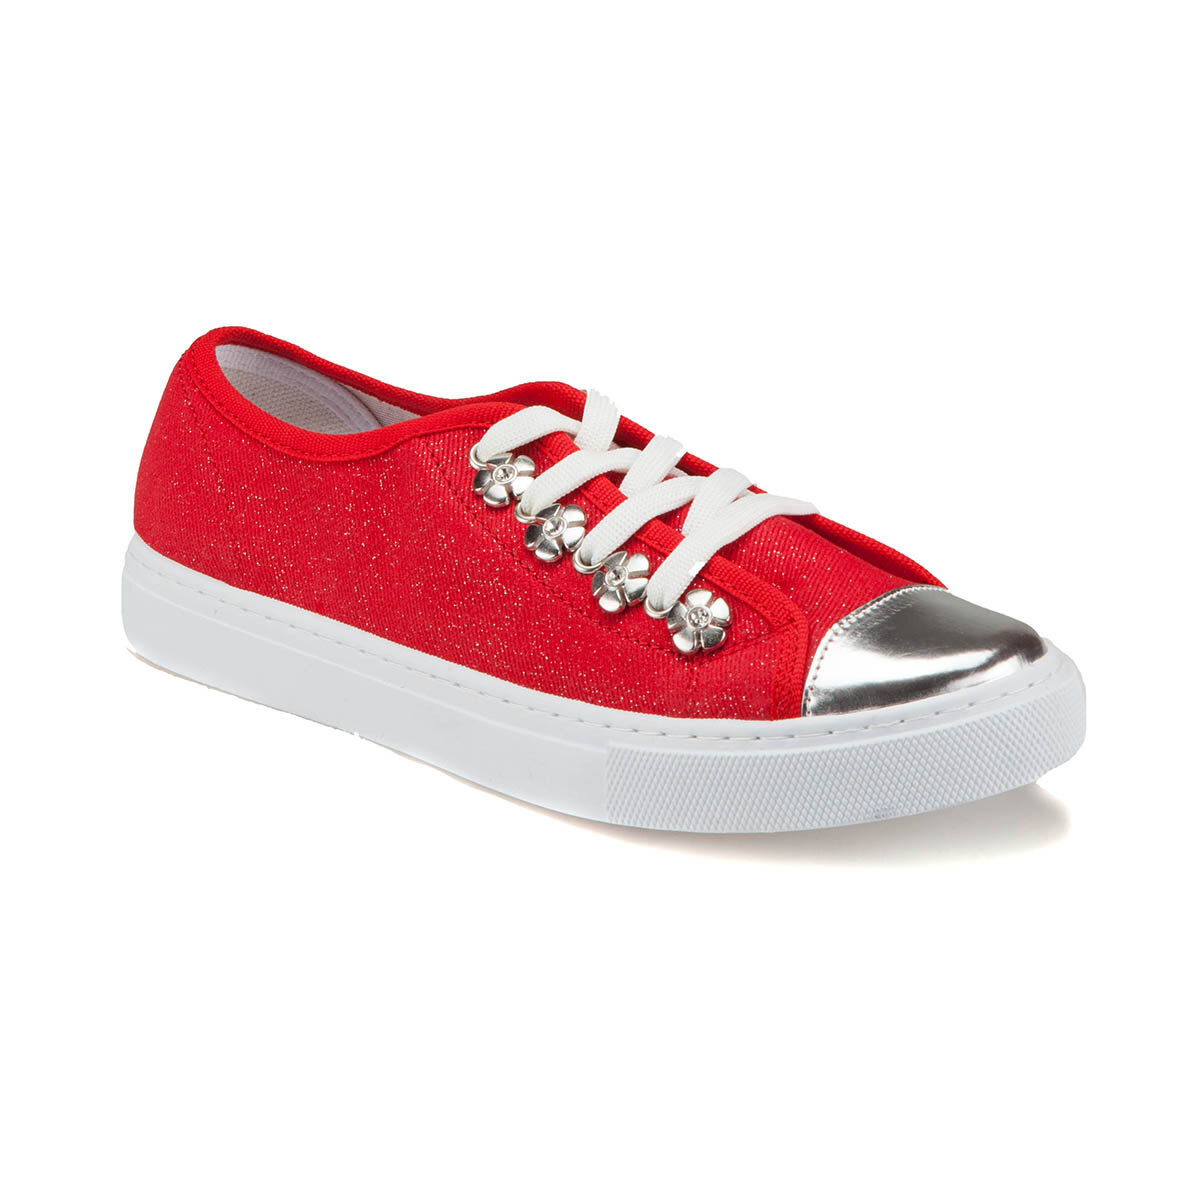 FLO U1650 Z Red Women 'S Sneaker Shoes Carmens title=